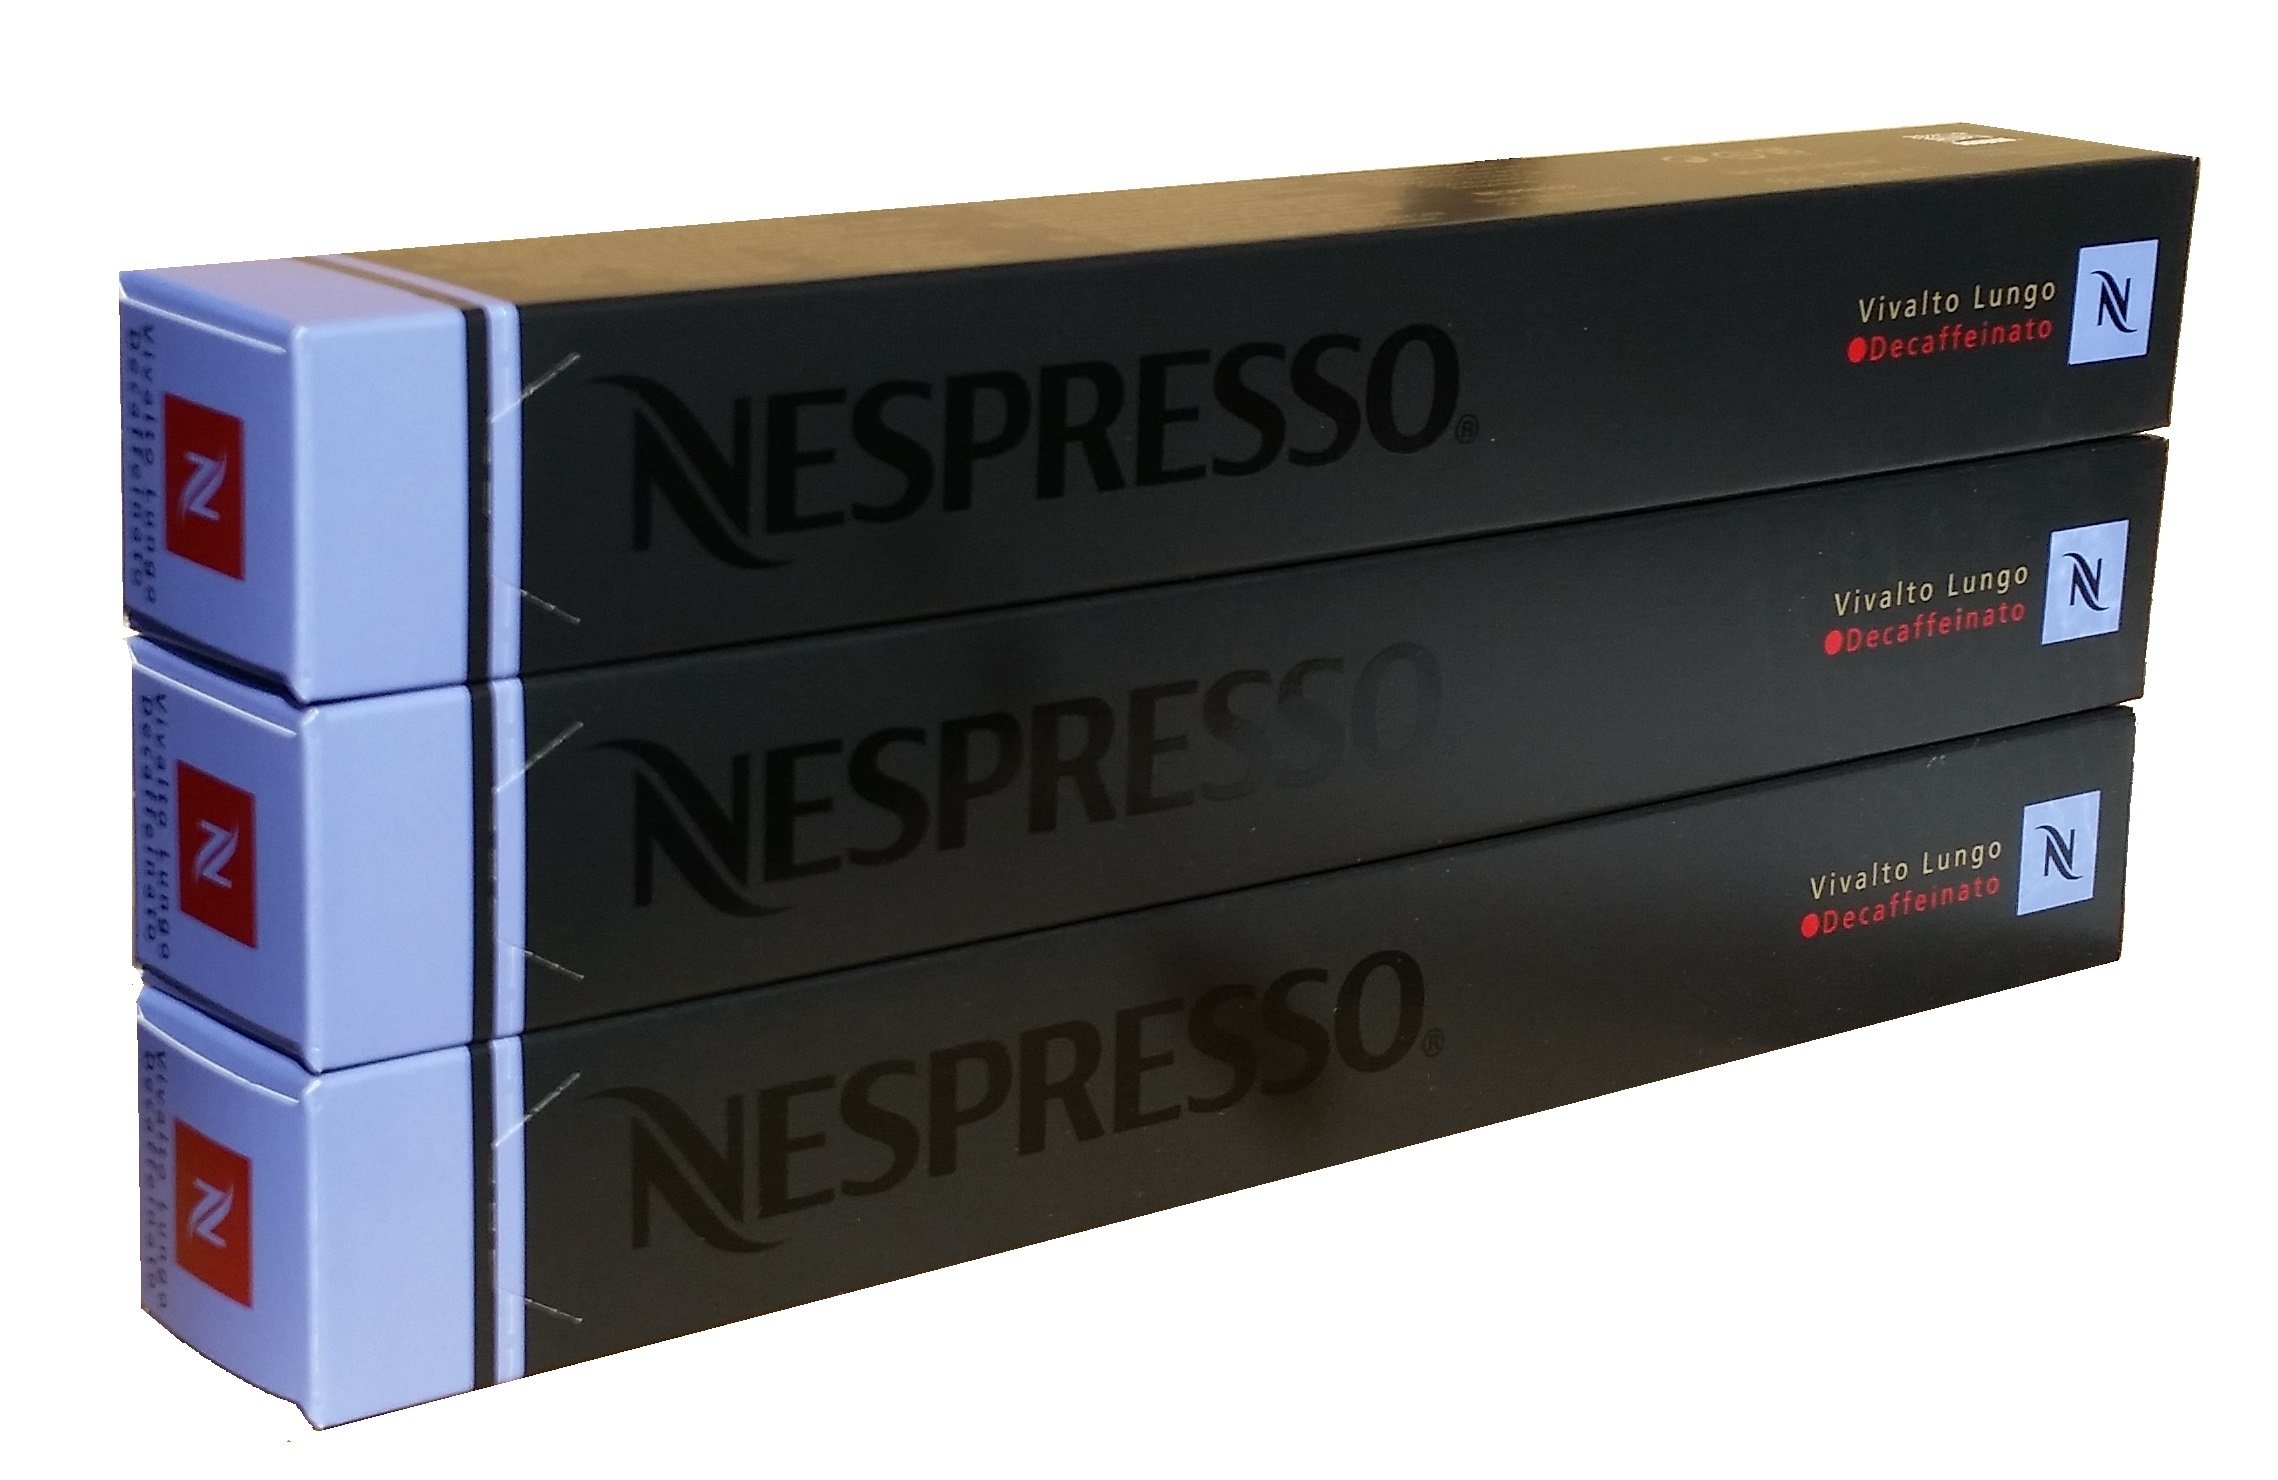 Nespresso Original Decaffeinato coffee pods and capsules (a cereal, floral notes, roasted notes, woody notes coffee with aromas of caramel and roasted, fresh fruit and petals, nutty, spices and tobacco)